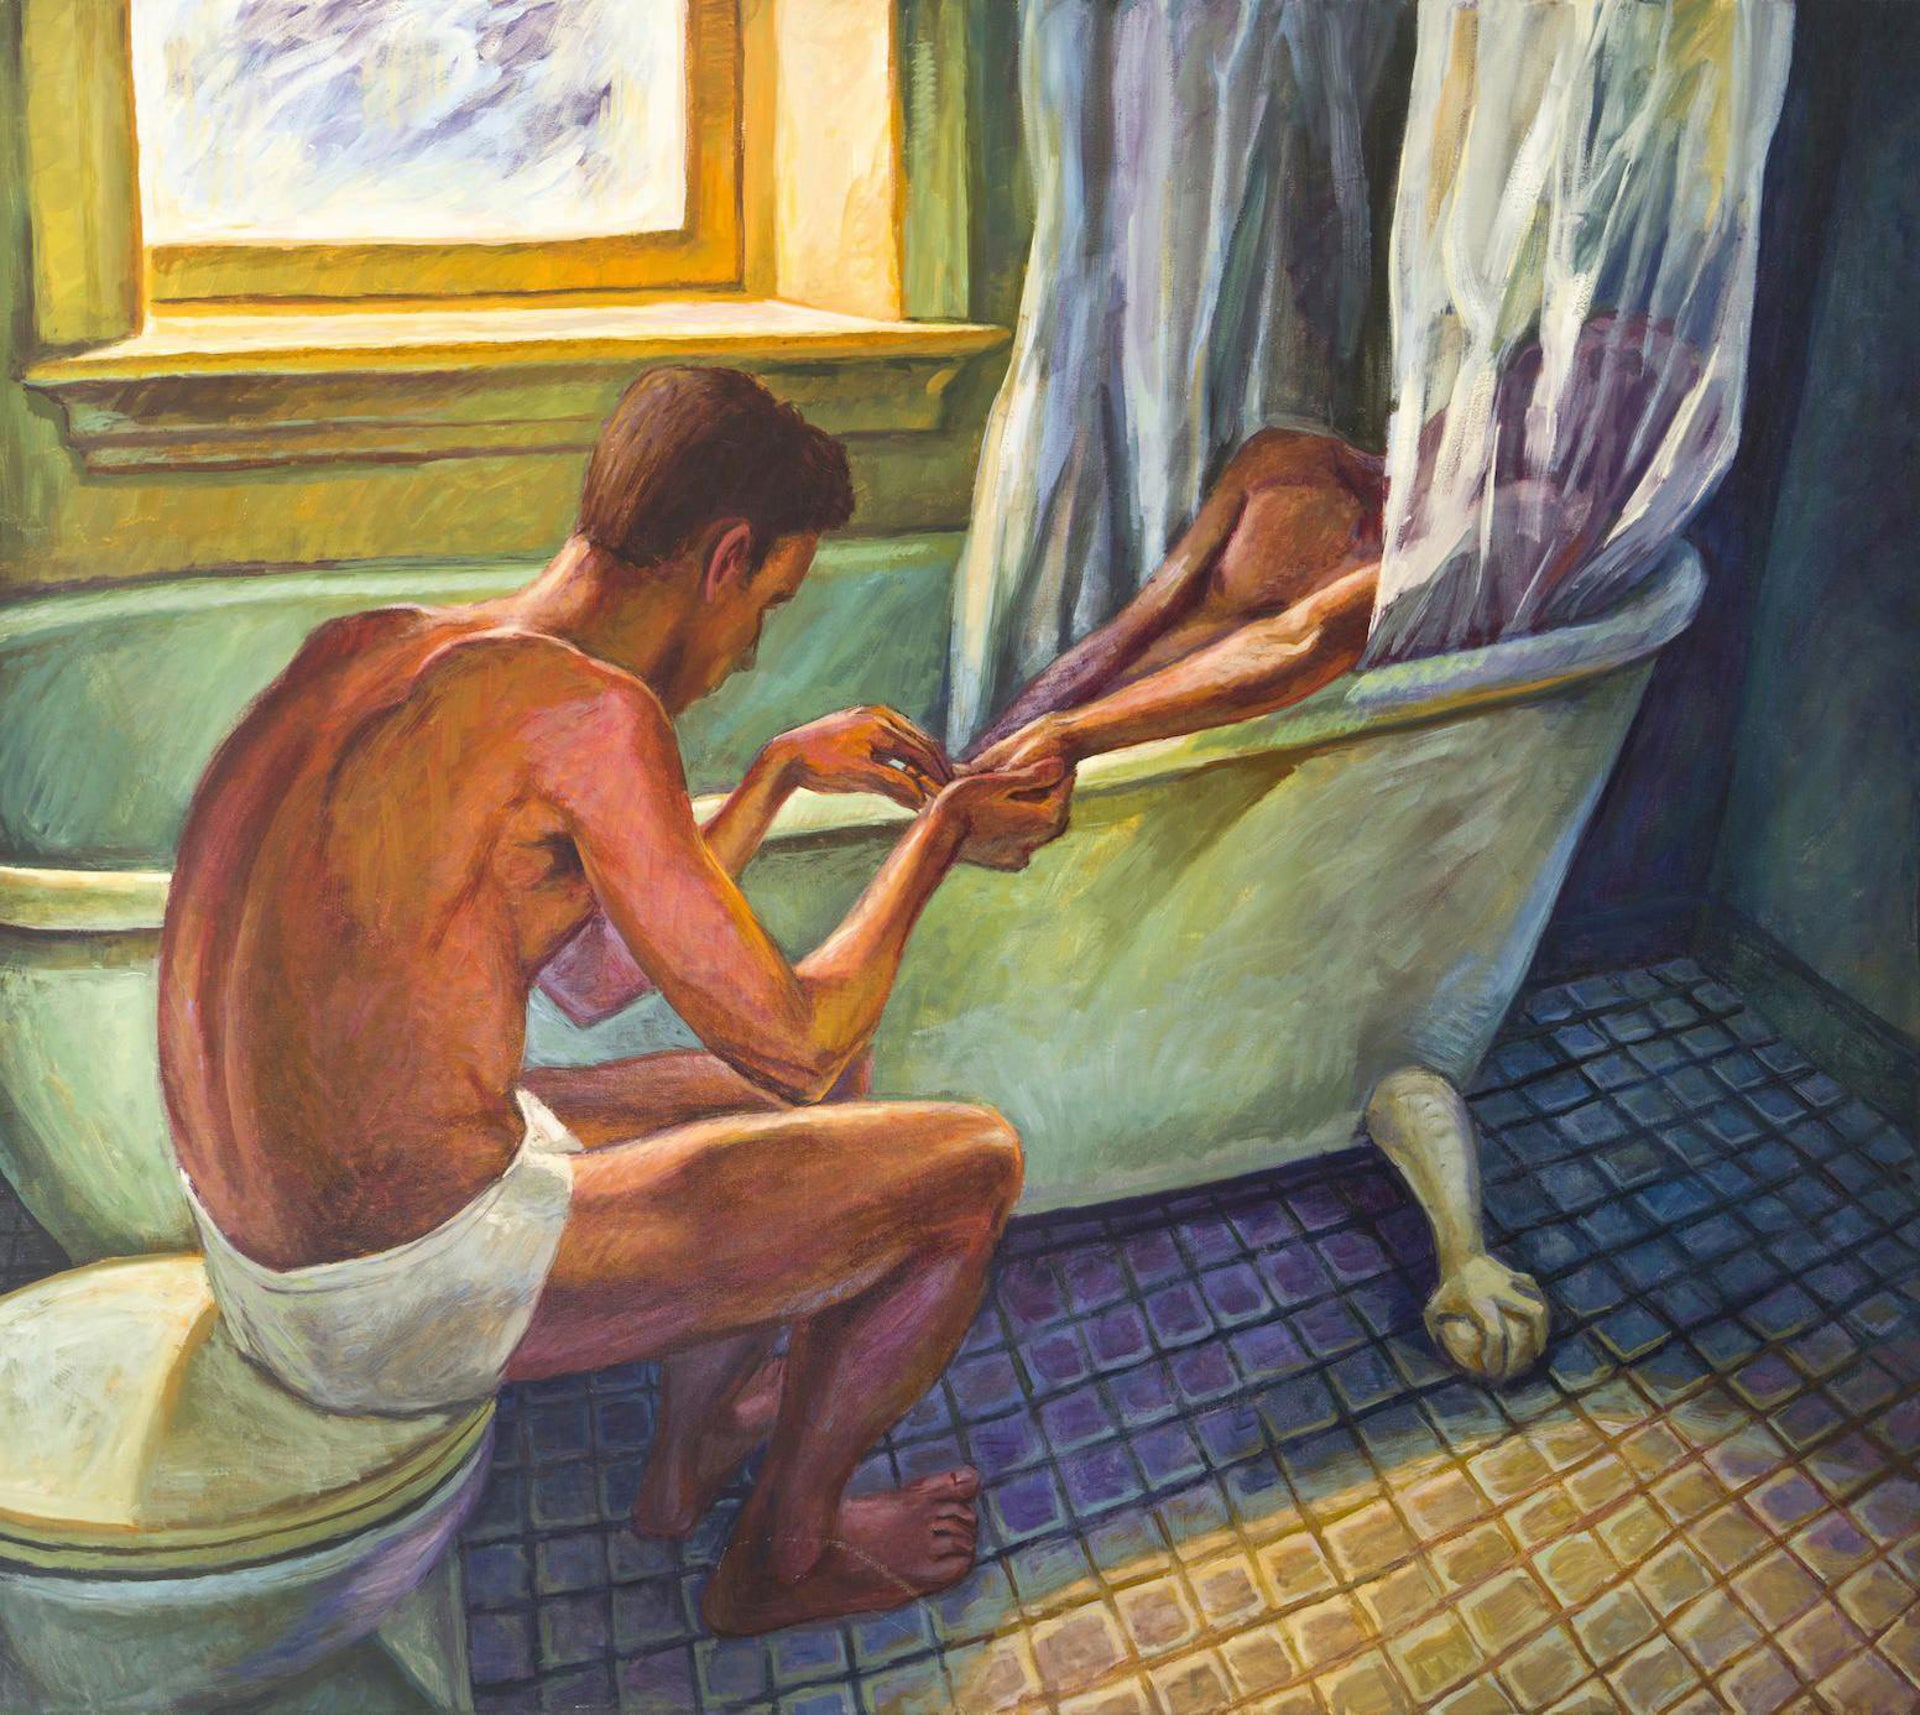 """Bath Curtain,"" Hugh Steers' powerful work from 1992. Depicts both a tender domestic moment and a political critique."